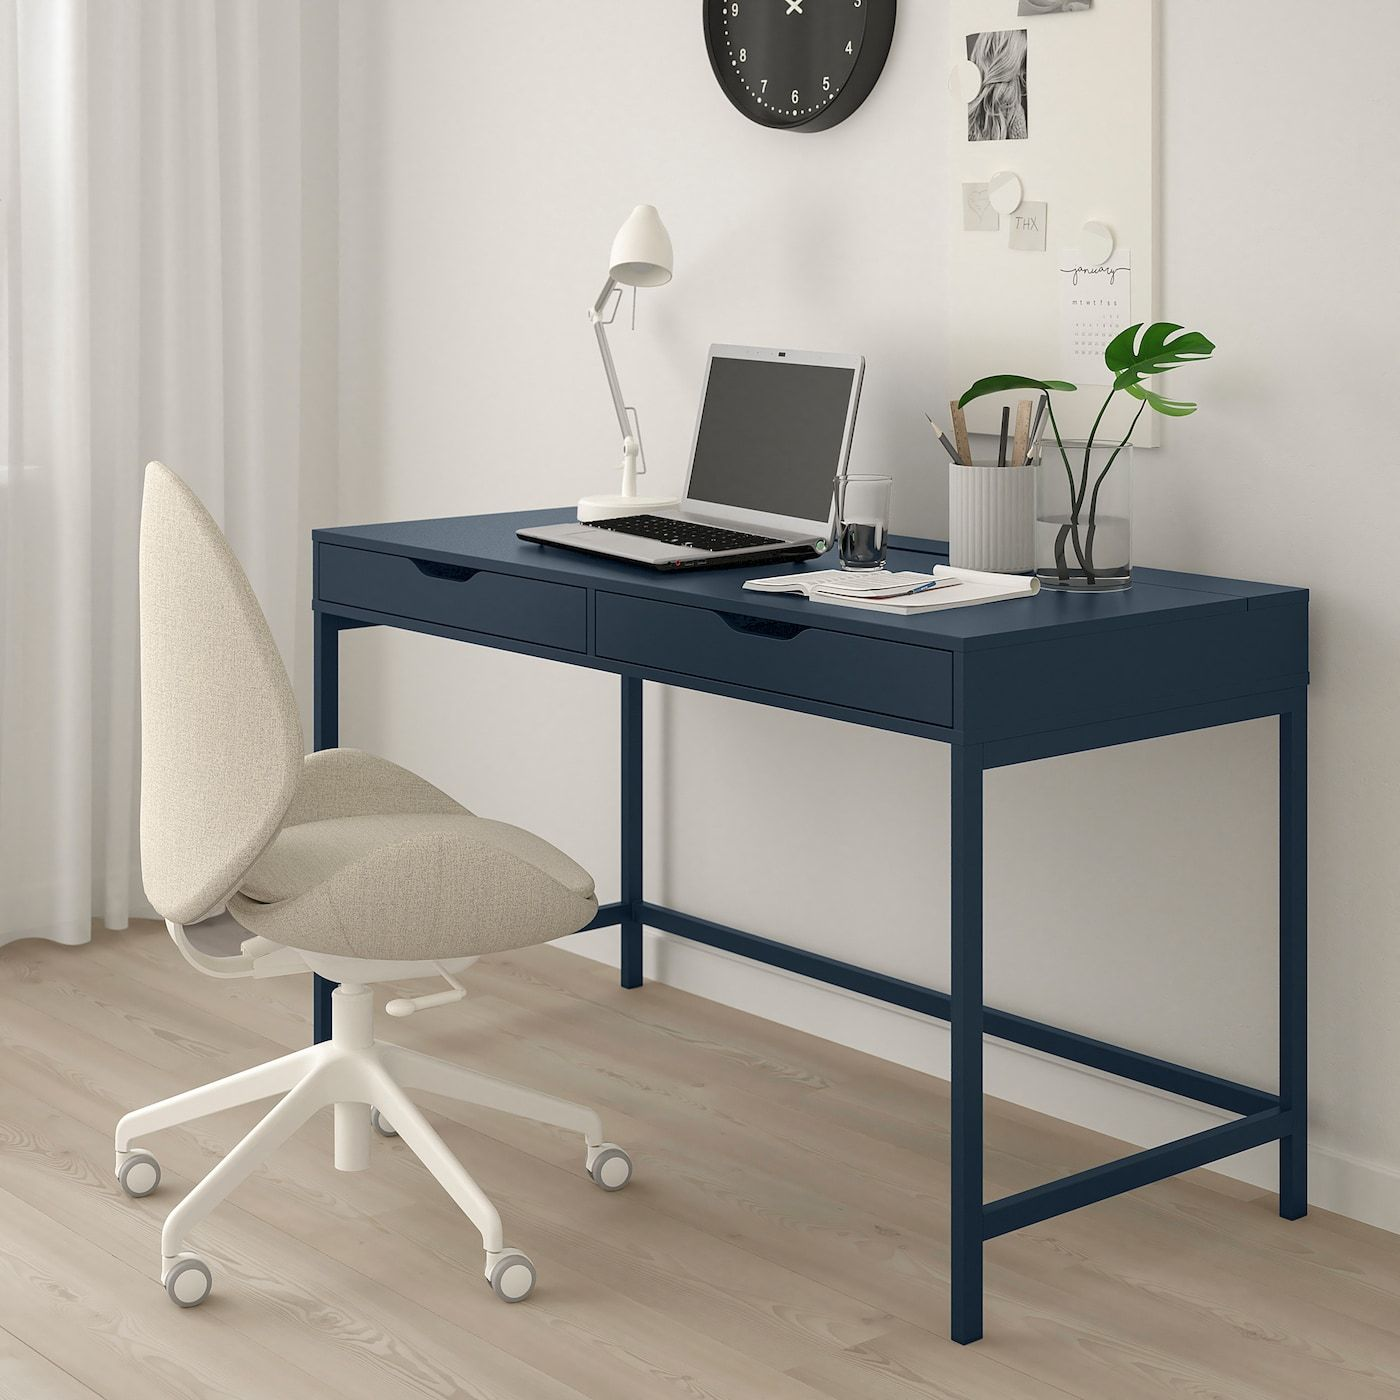 Alex Desk Blue 51 5 8x23 5 8 Ikea Ikea Alex Desk Alex Desk